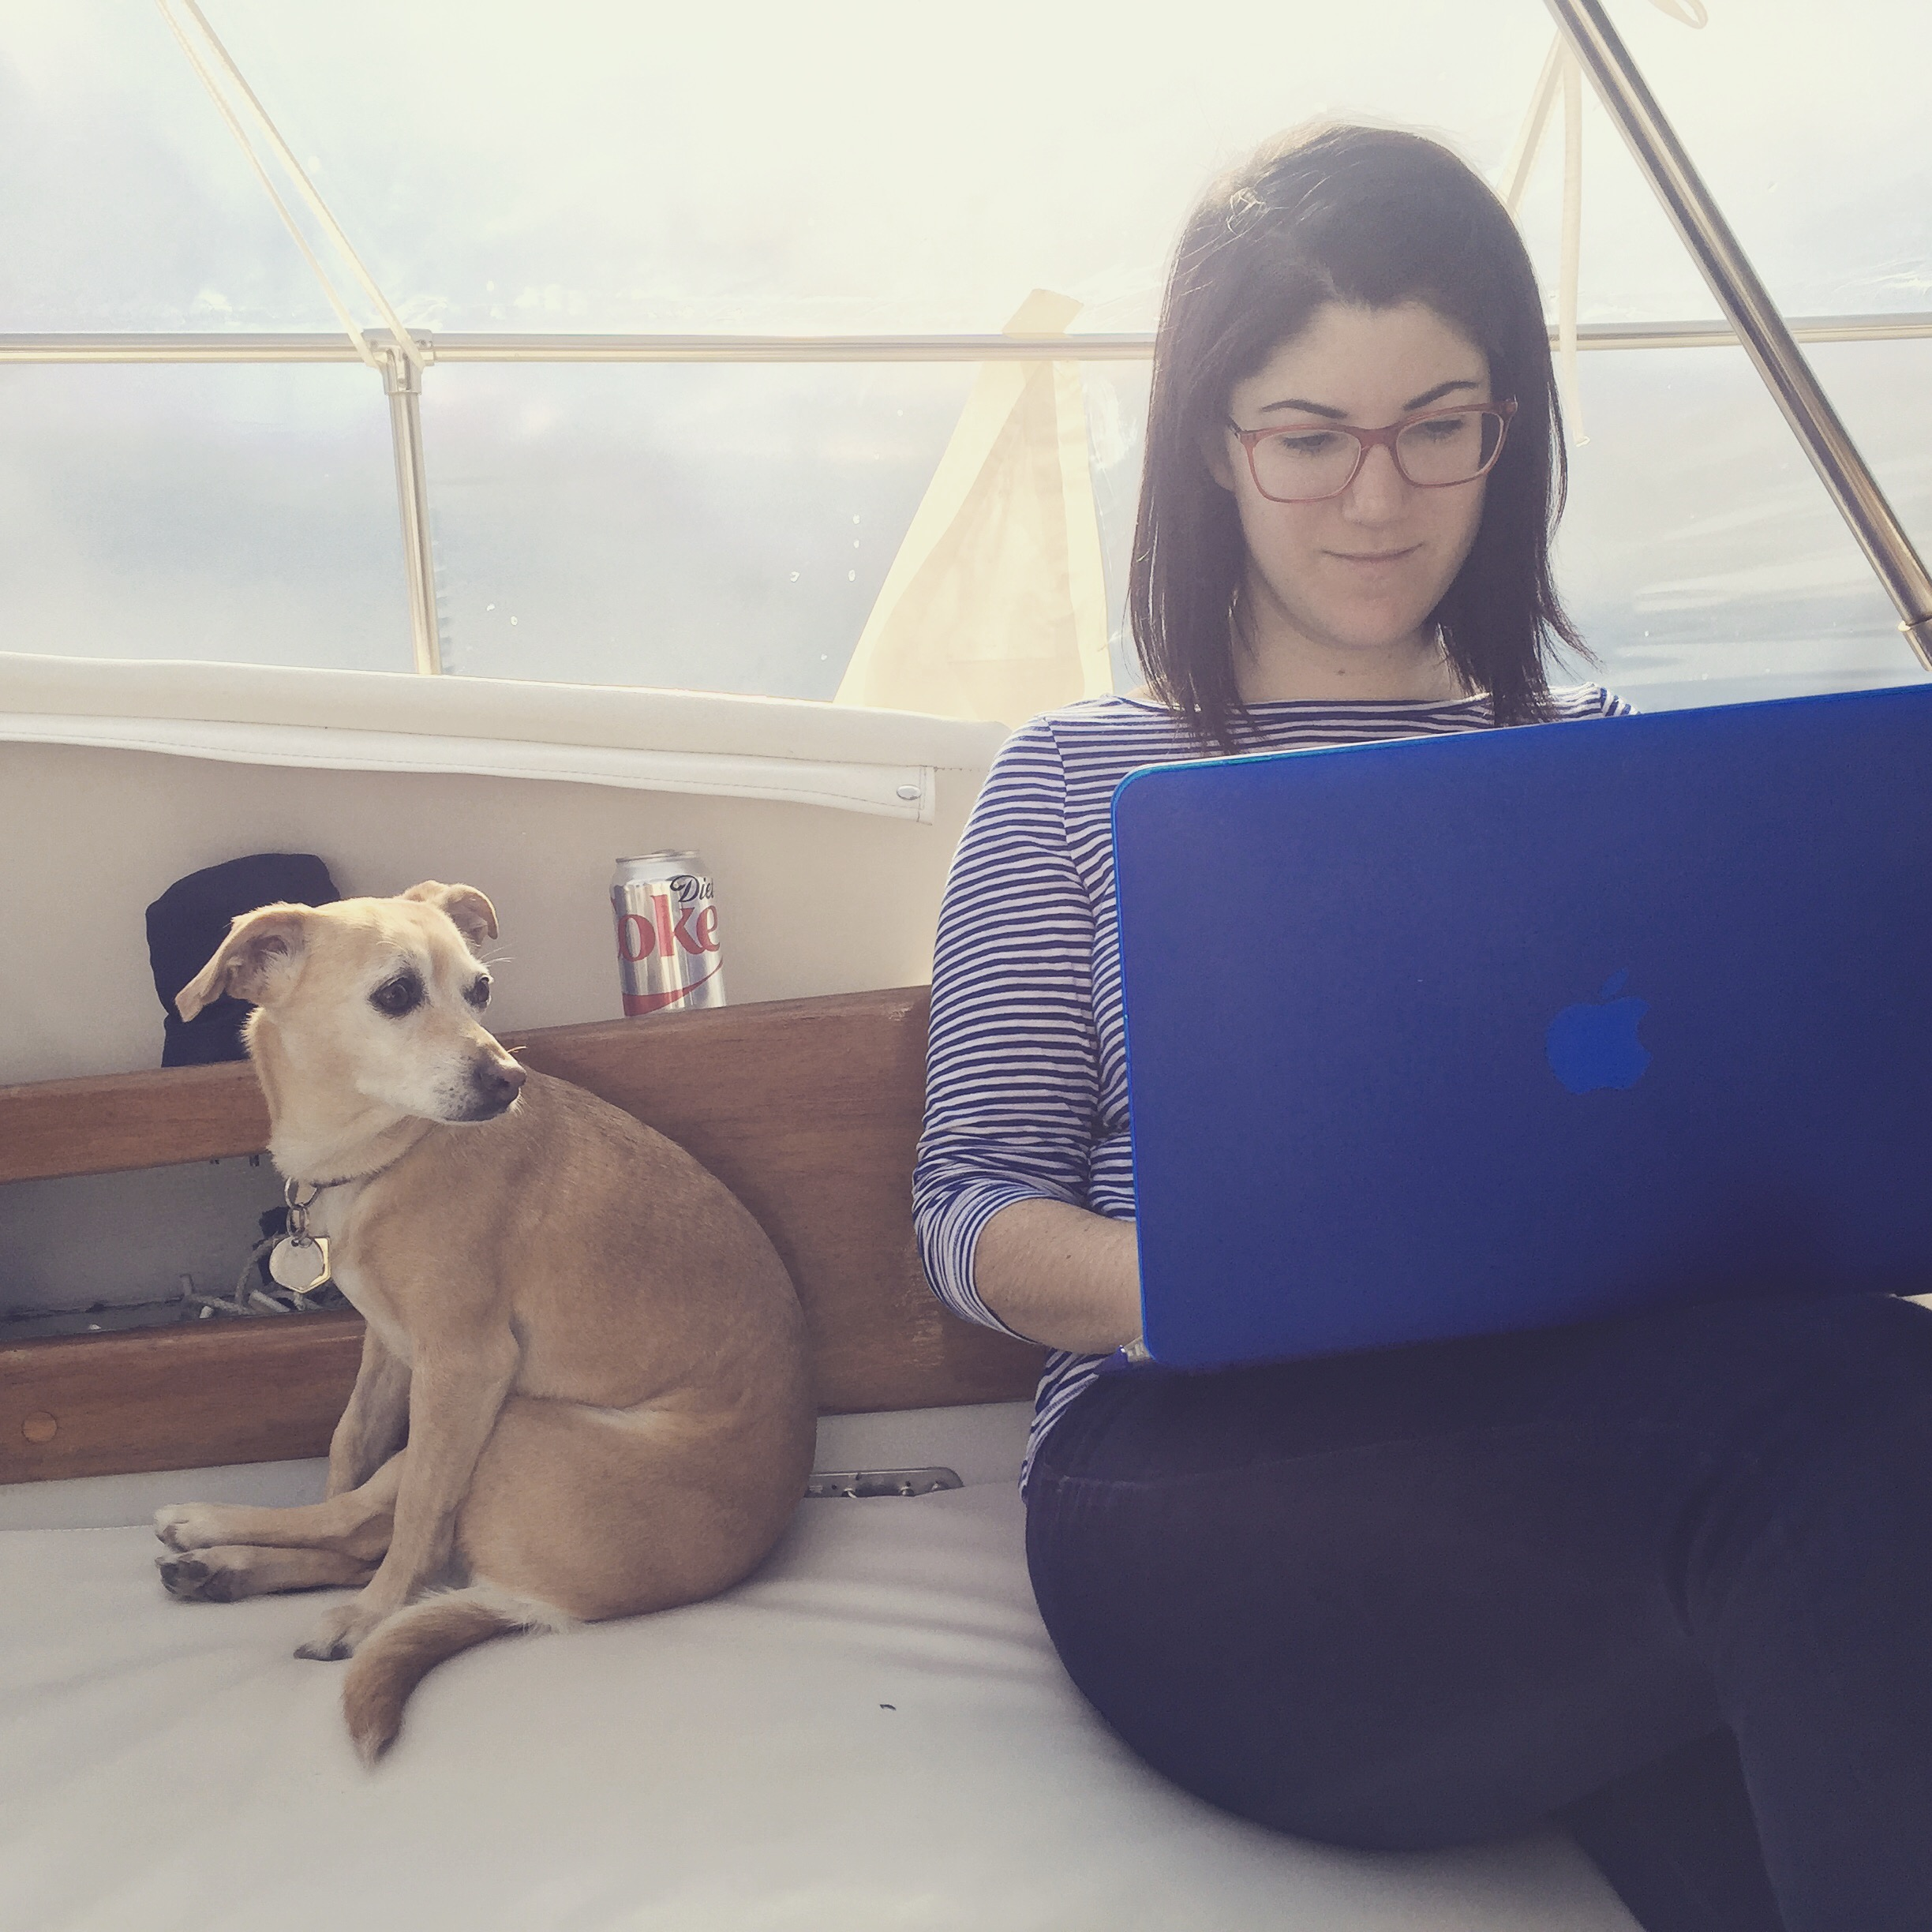 Blogging from the comfort of our cozily wrapped deck.